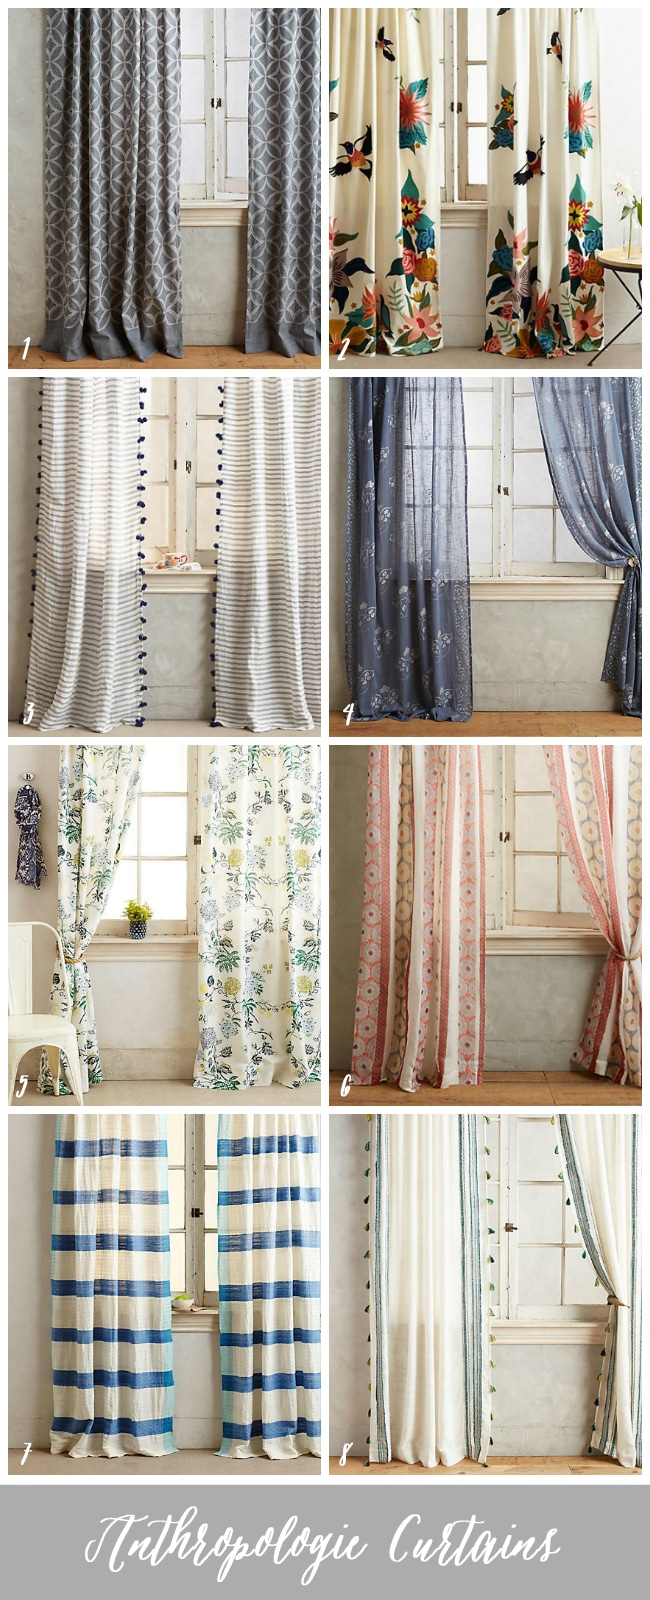 The Question of Curtain Panels